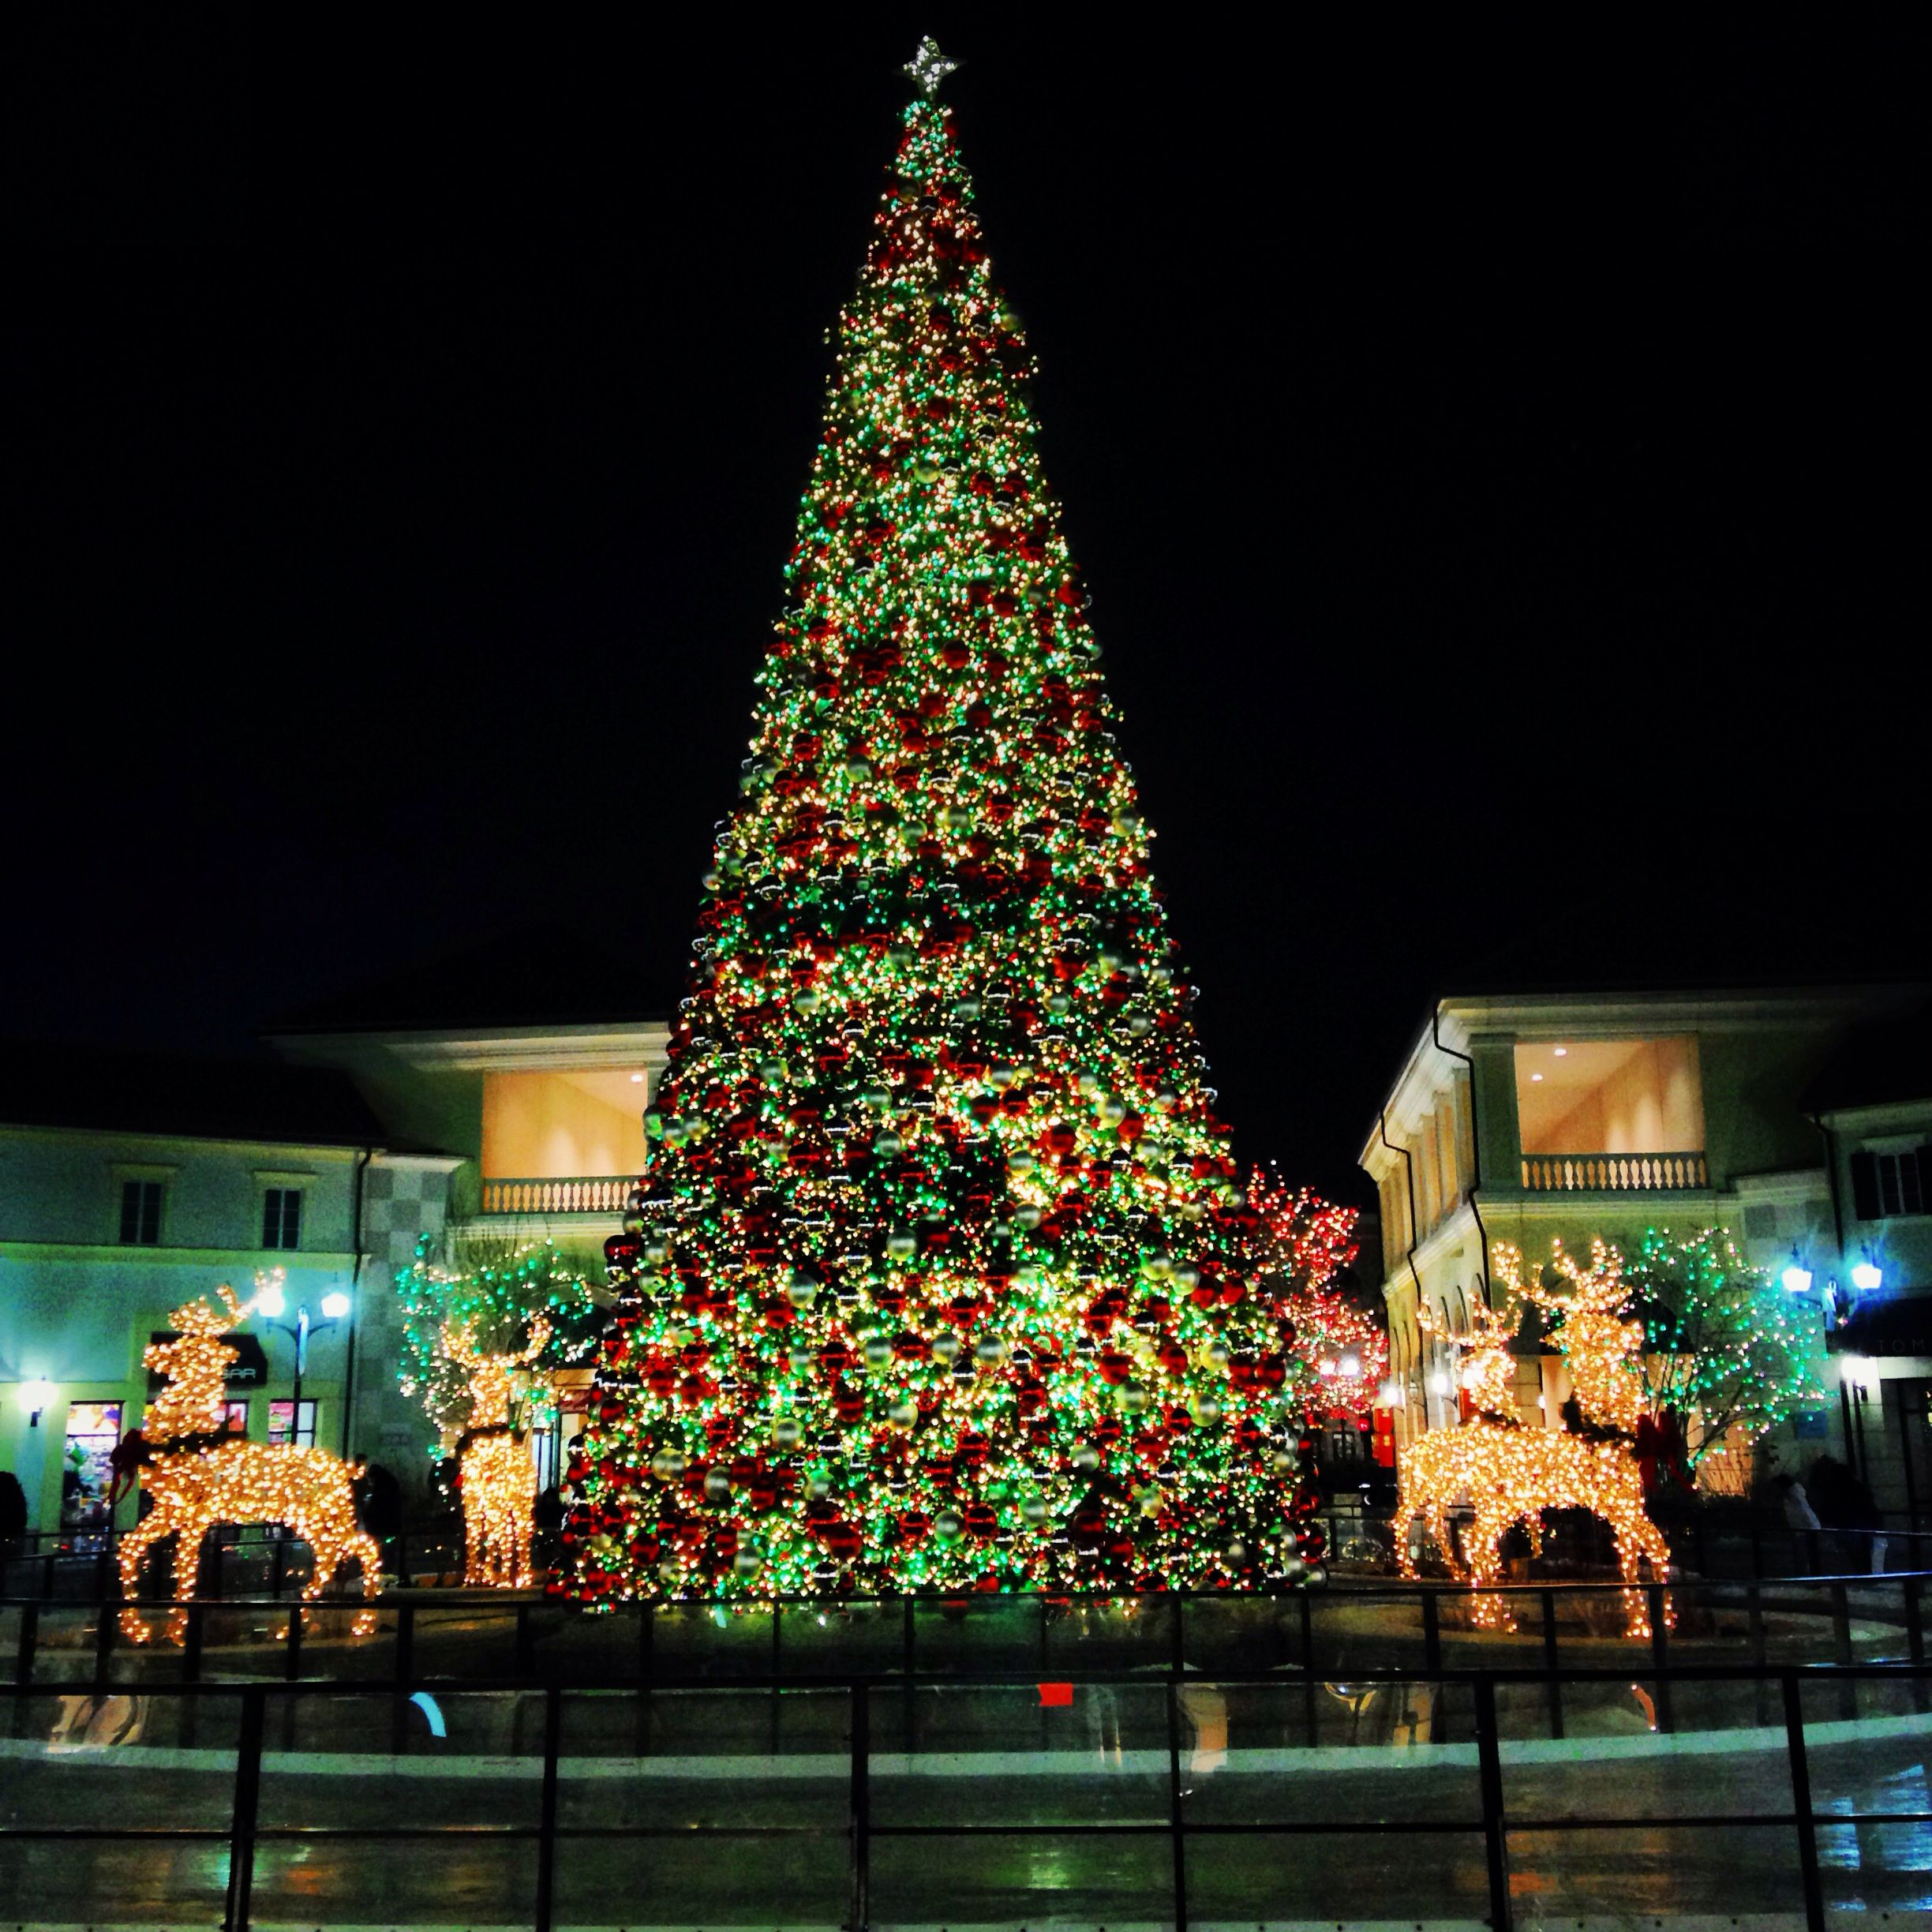 Lights, Music, Ice skating & Snow makes shopping fun at Tanger Outlets,  Deer. Long Island NyIsland LifeLight MusicIce SkatingDeerOutletsChristmas  Trees